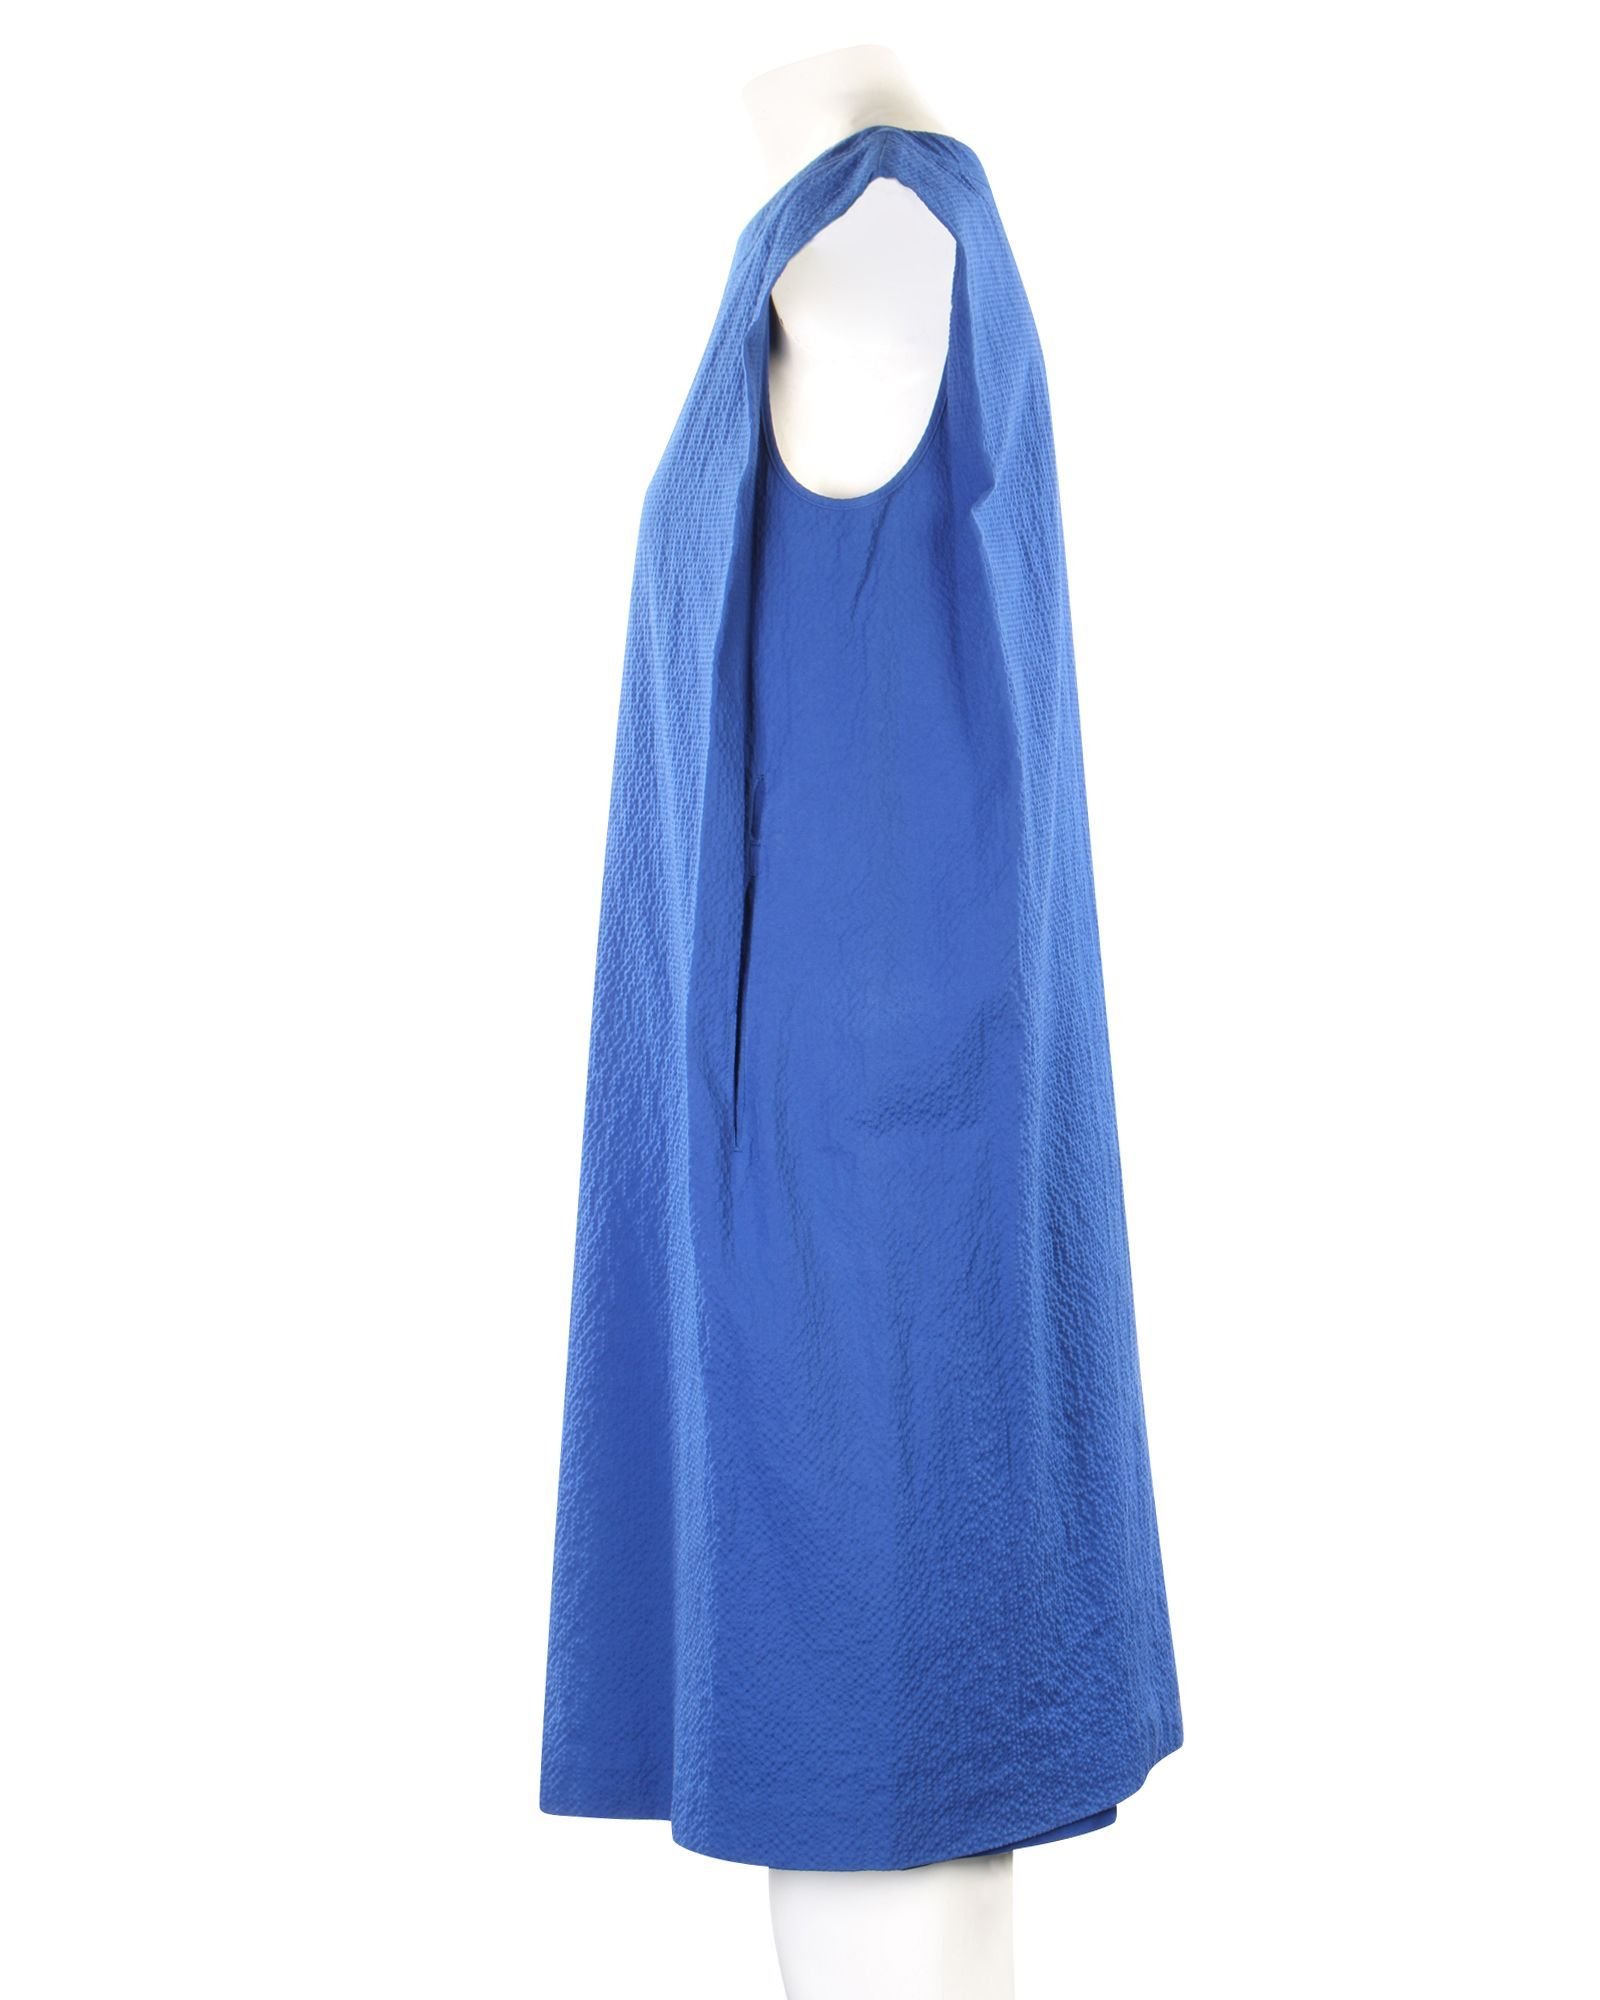 Hermès Blue Shift Dress -Pre Owned Condition Good